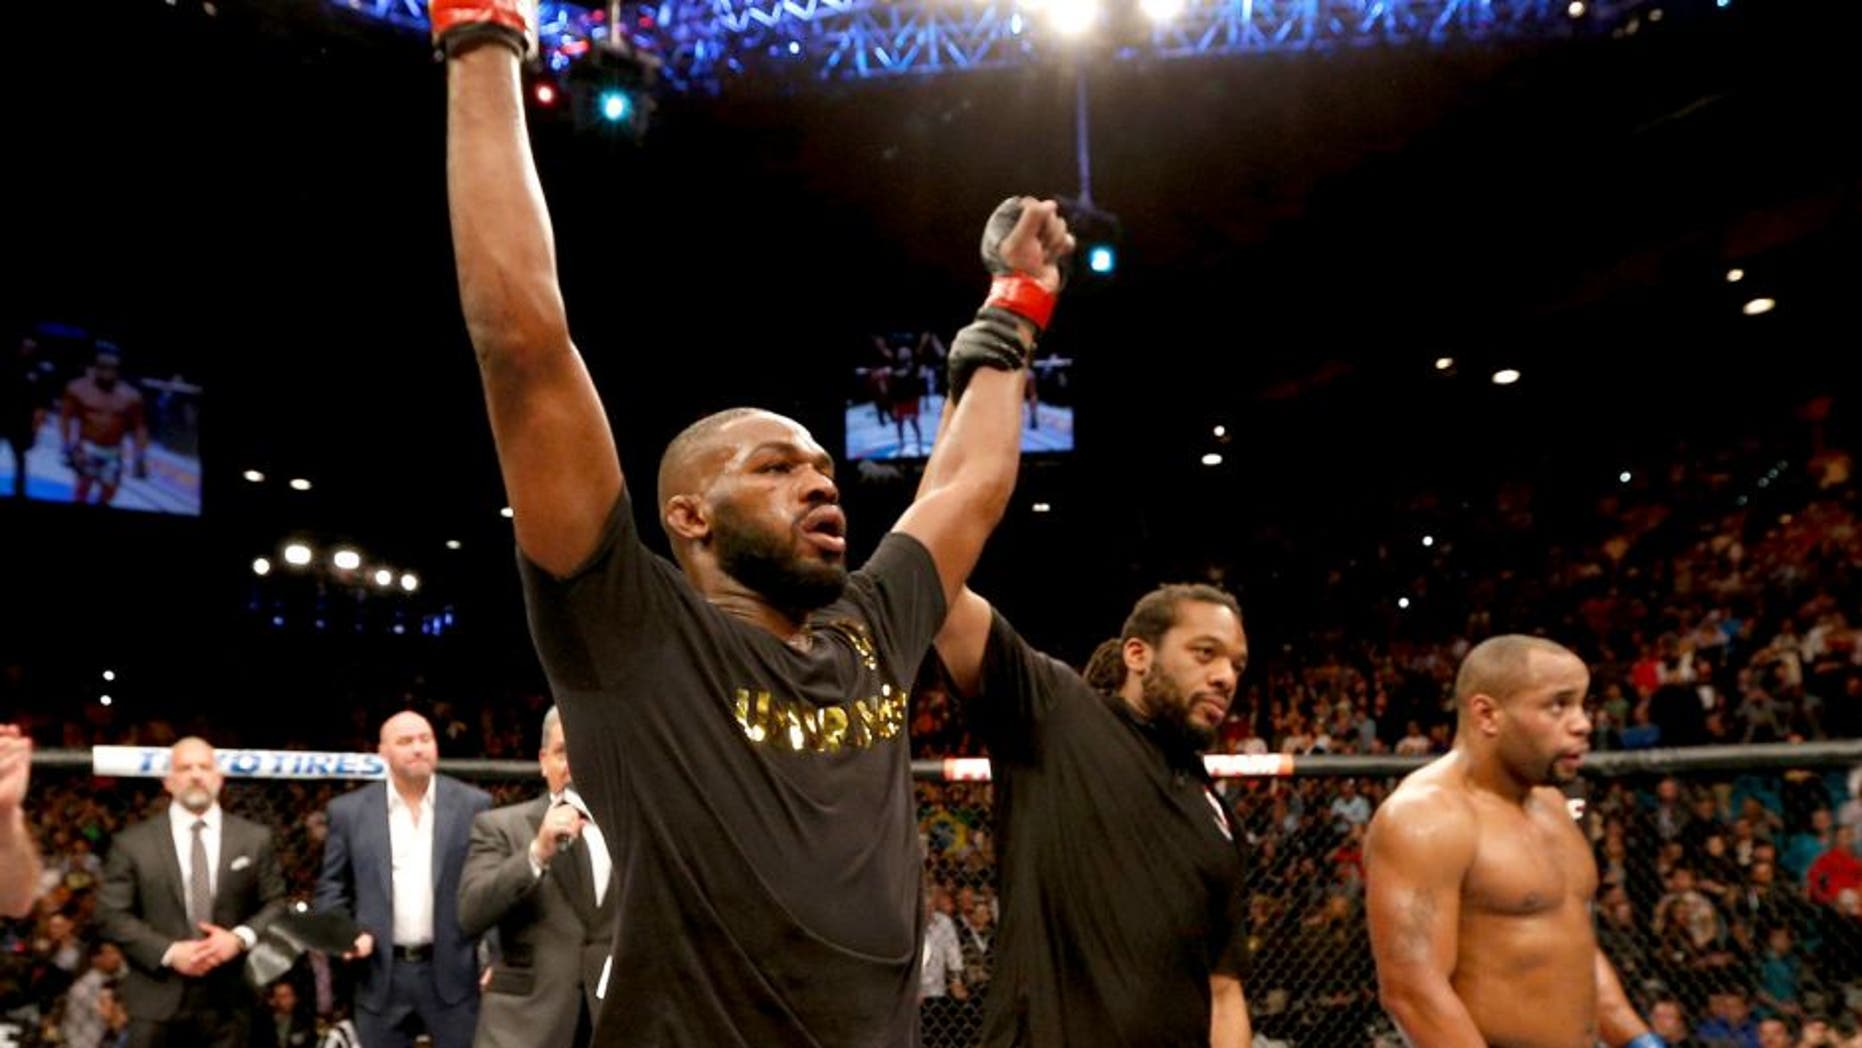 LAS VEGAS, NV - JANUARY 03: UFC light heavyweight champion Jon Jones (L) celebrates his win over Daniel Cormier (R) in their UFC light heavyweight championship bout during the UFC 182 event at the MGM Grand Garden Arena on January 3, 2015 in Las Vegas, Nevada. (Photo by Josh Hedges/Zuffa LLC/Zuffa LLC via Getty Images)